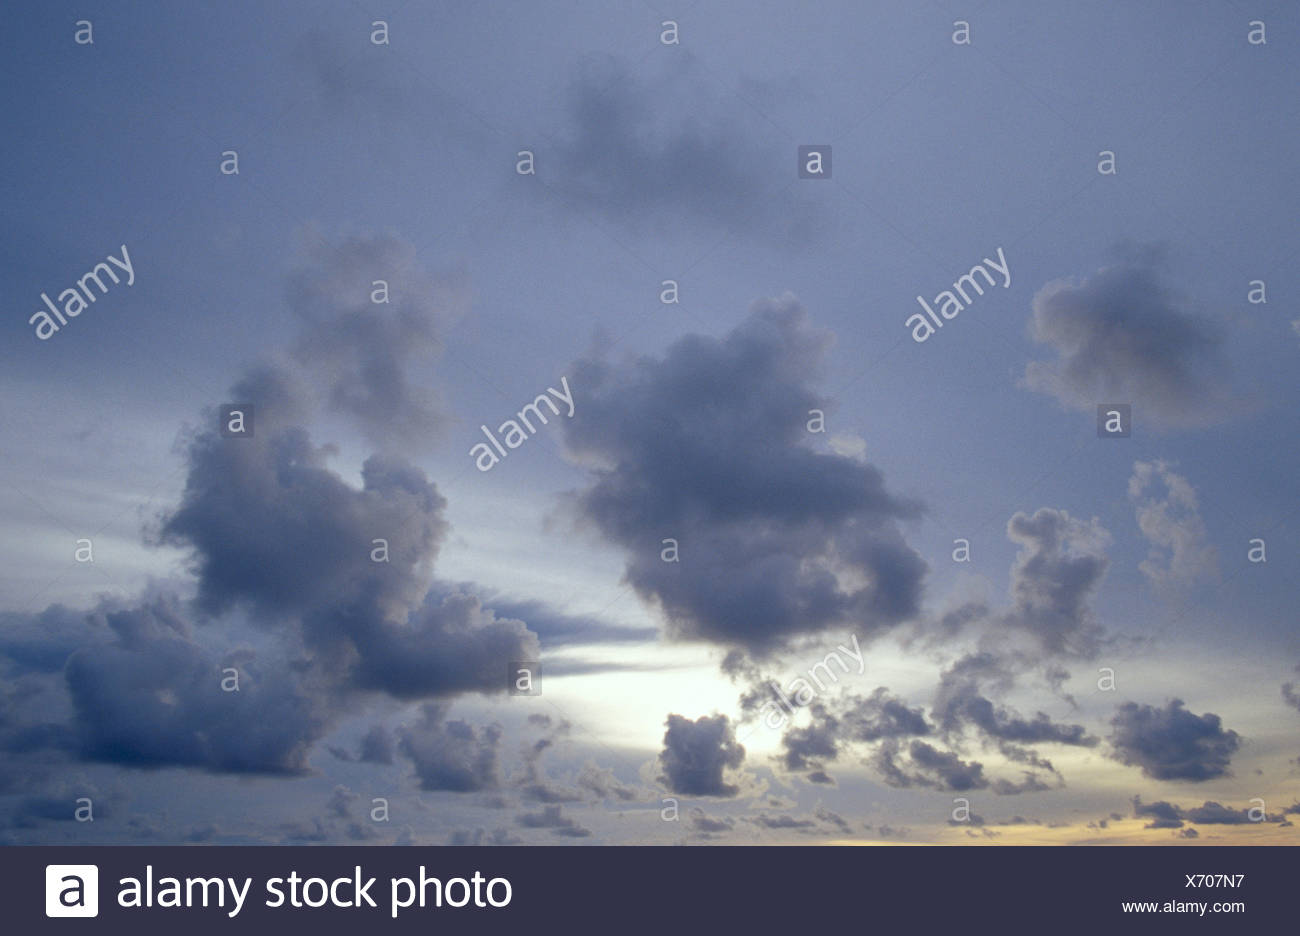 Wispy tropical storm clouds in the afterglow of sunset. - Stock Image